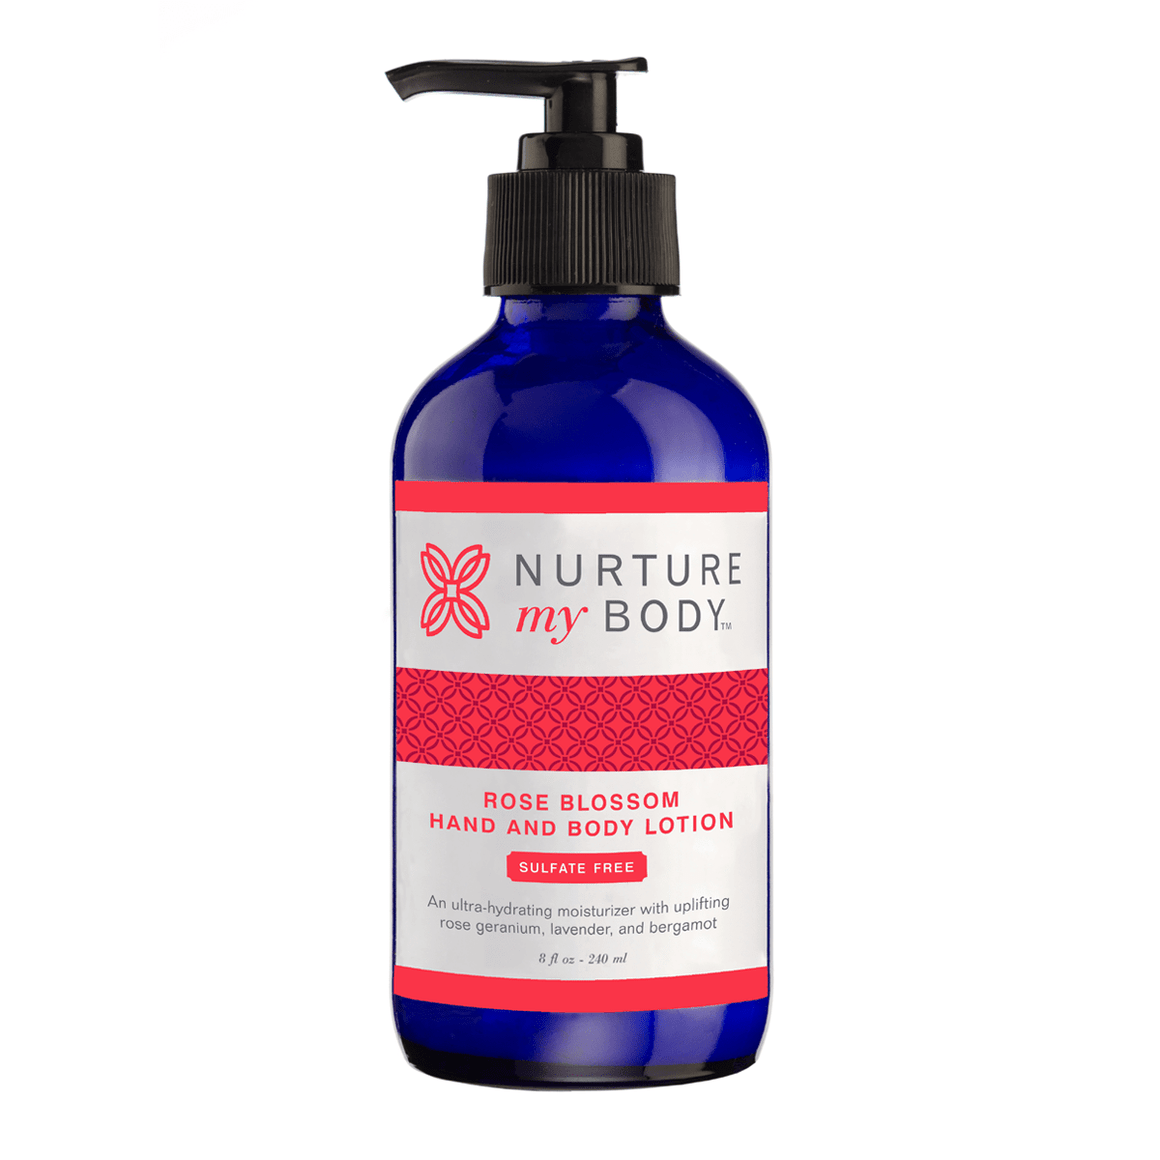 Rose Blossom Hand and Body Lotion by Nurture My Body